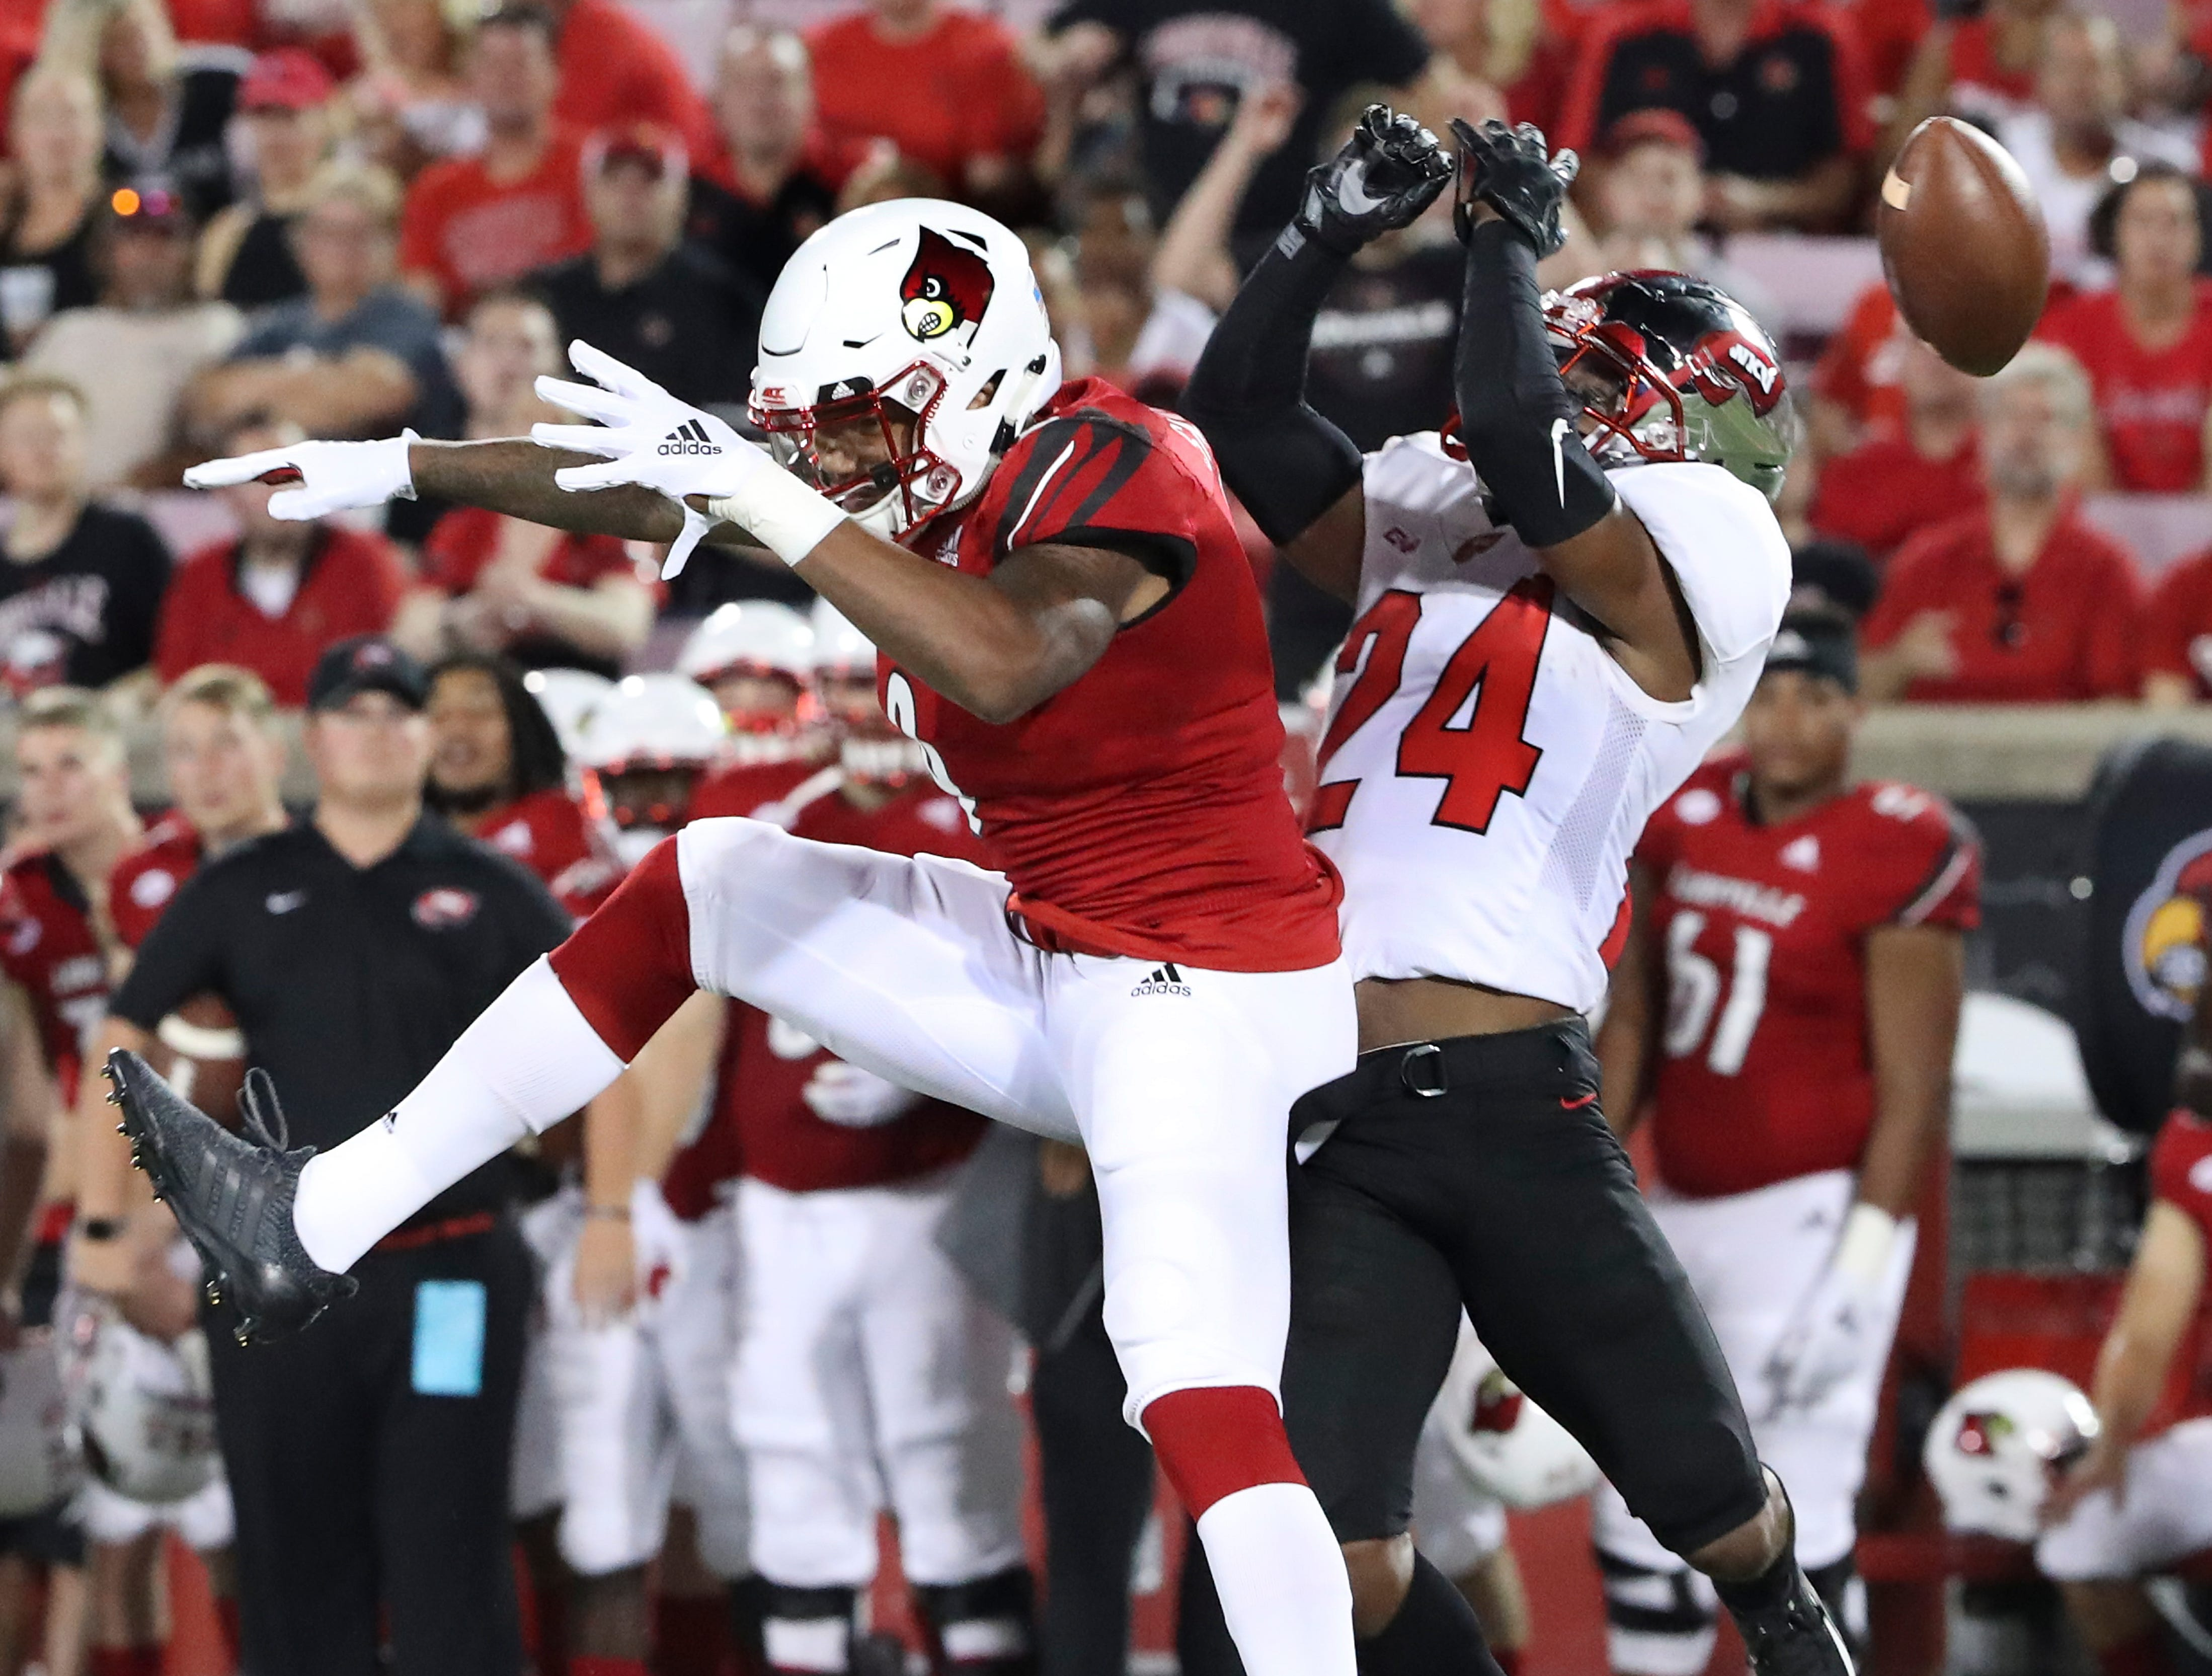 Louisville's Jaylen Smith (9) missed a pass that was almost intercepted by WKU's Roger Cray (24) during their game at Cardinal Stadium.